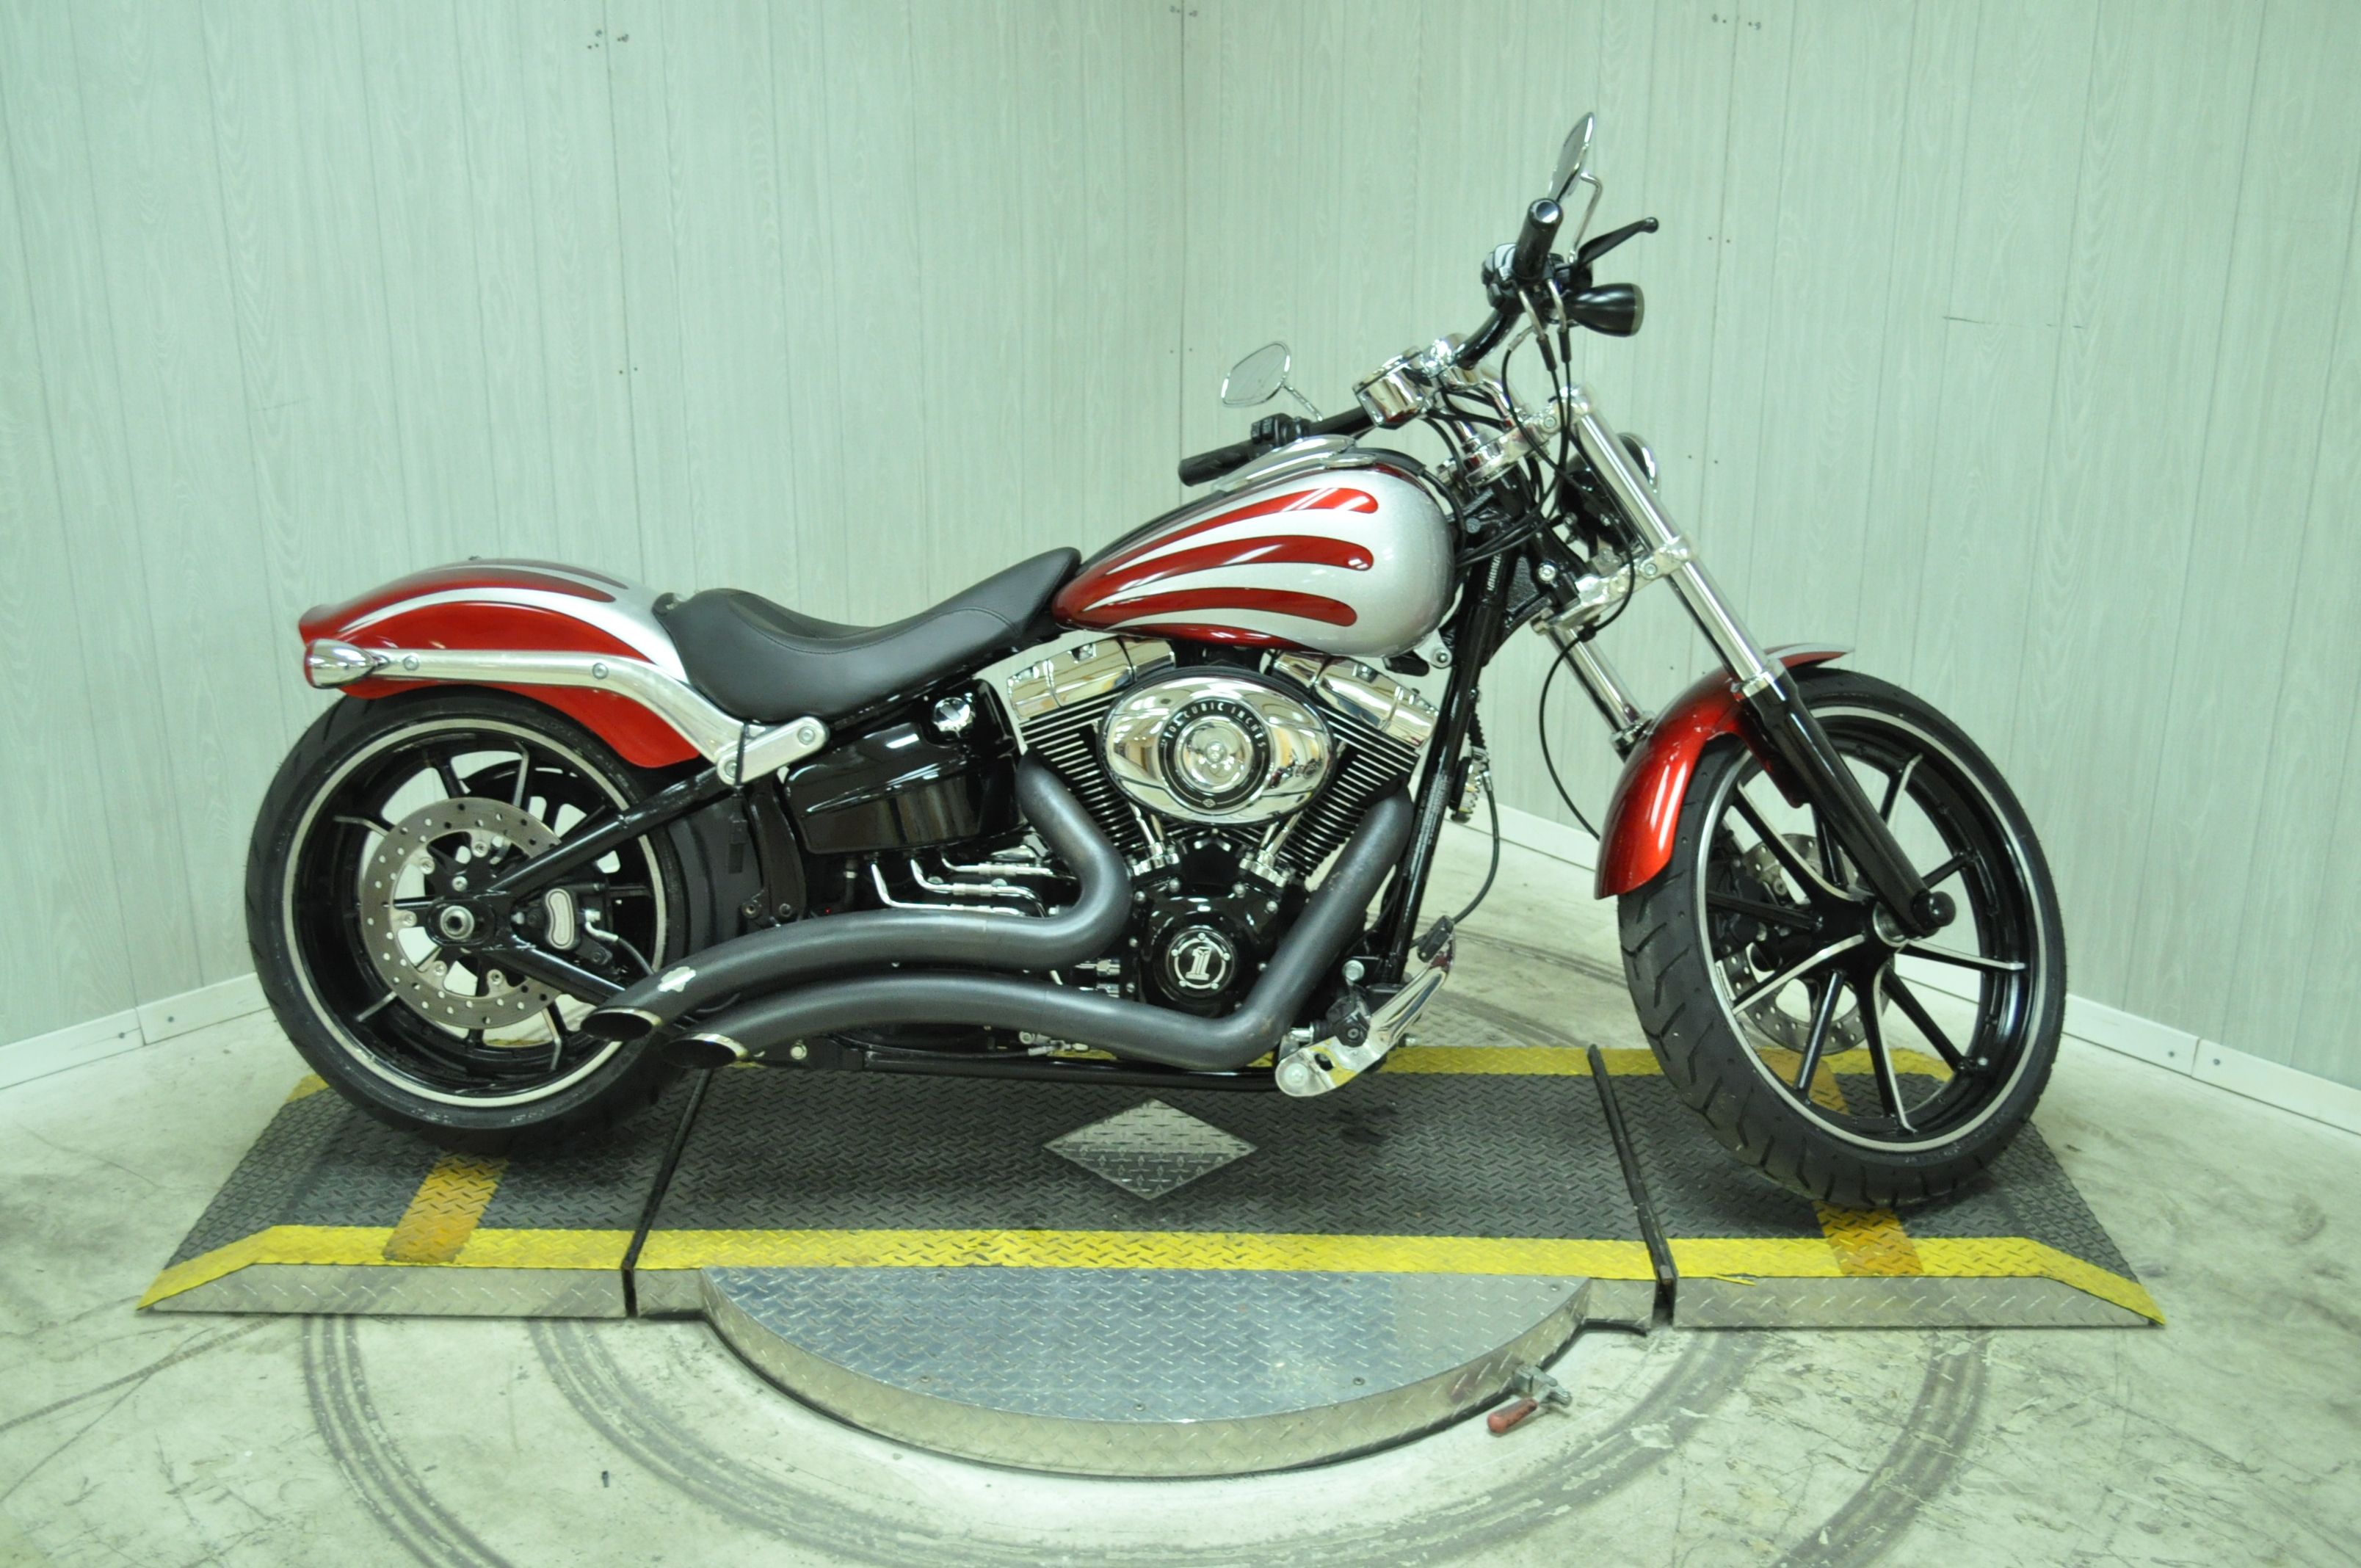 Pre-Owned 2013 Harley-Davidson Breakout FXSB